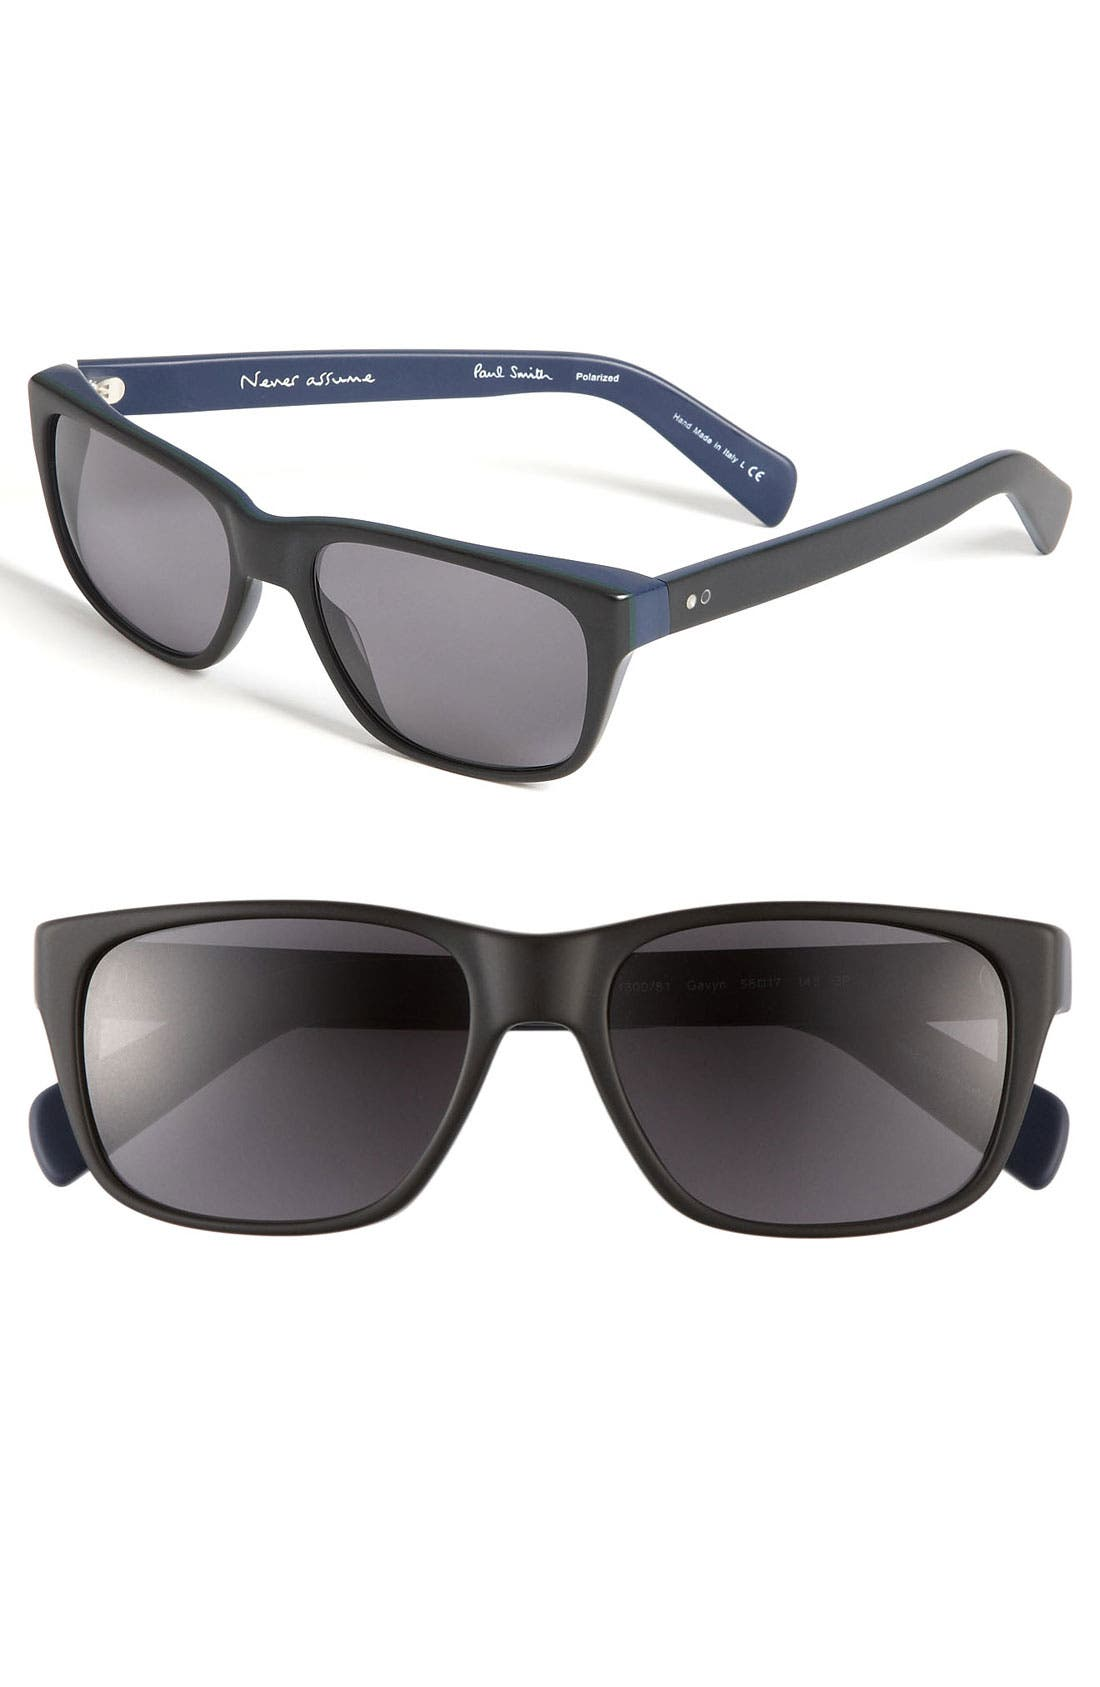 Main Image - Paul Smith 'Gavyn' Polarized Sunglasses